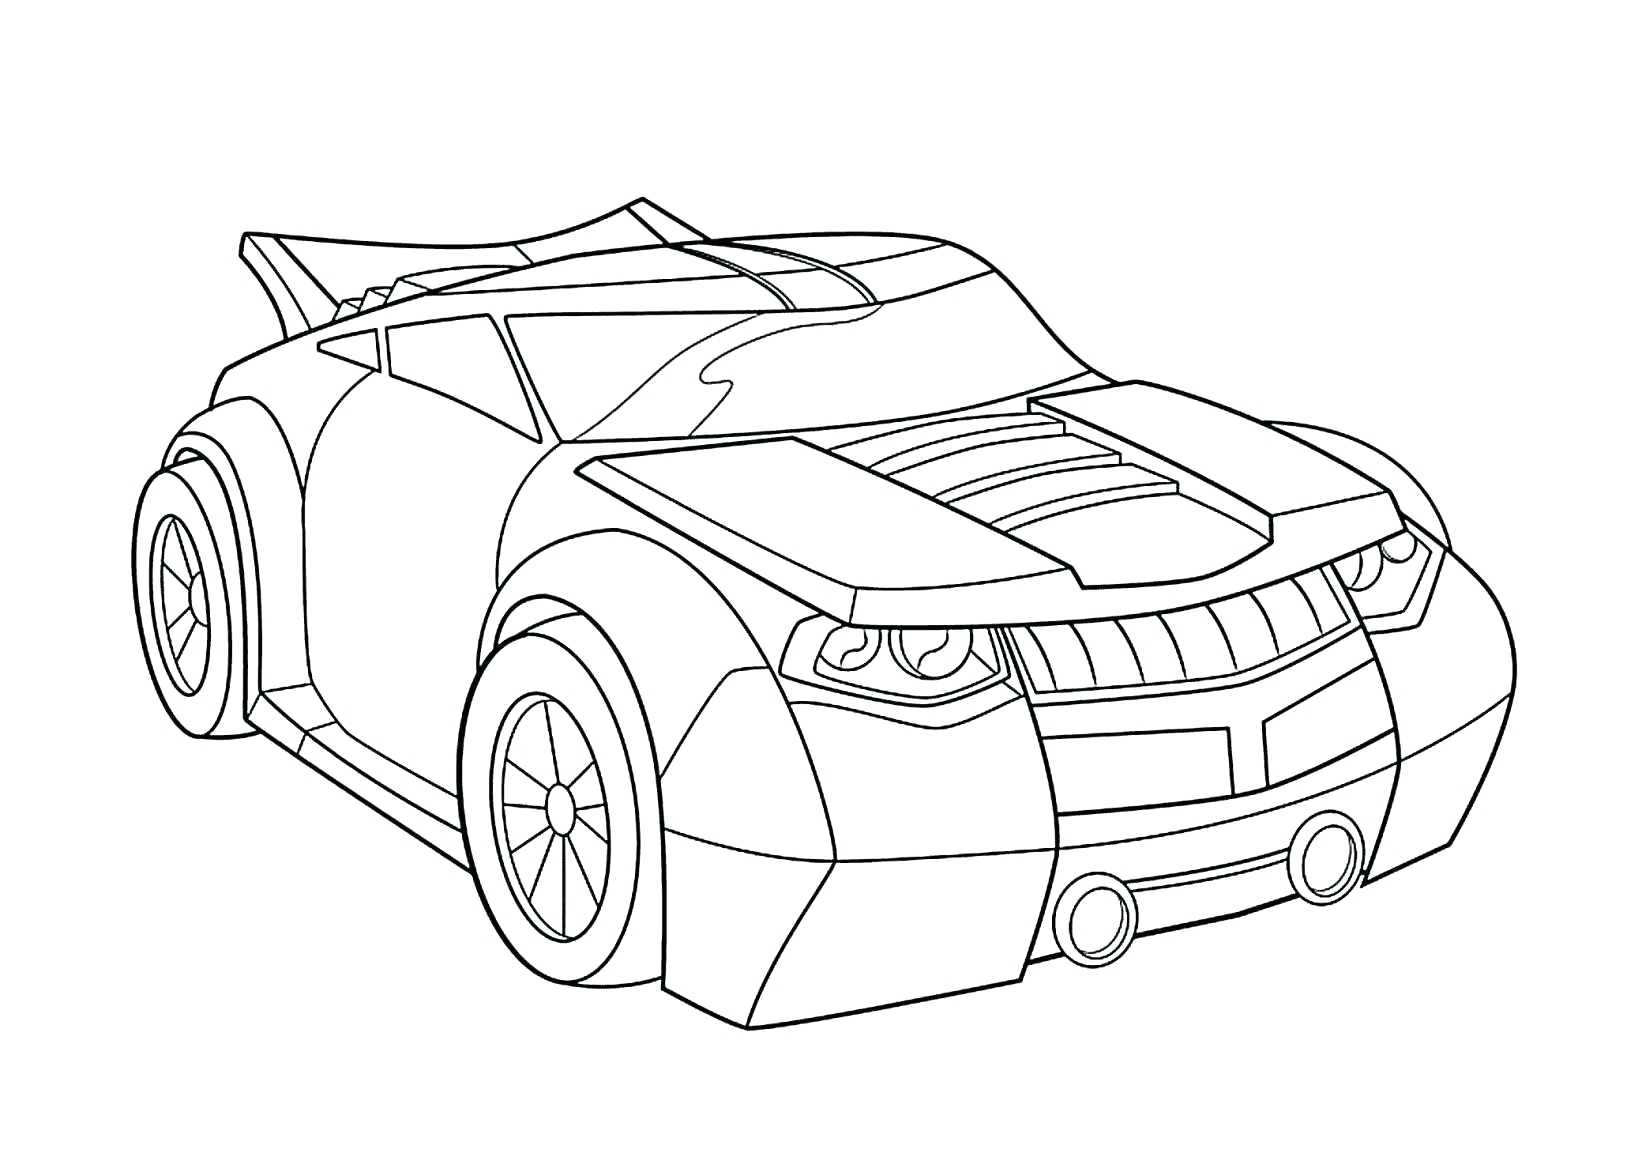 cool truck coloring pages cool monster truck coloring page free coloring pages online truck pages cool coloring